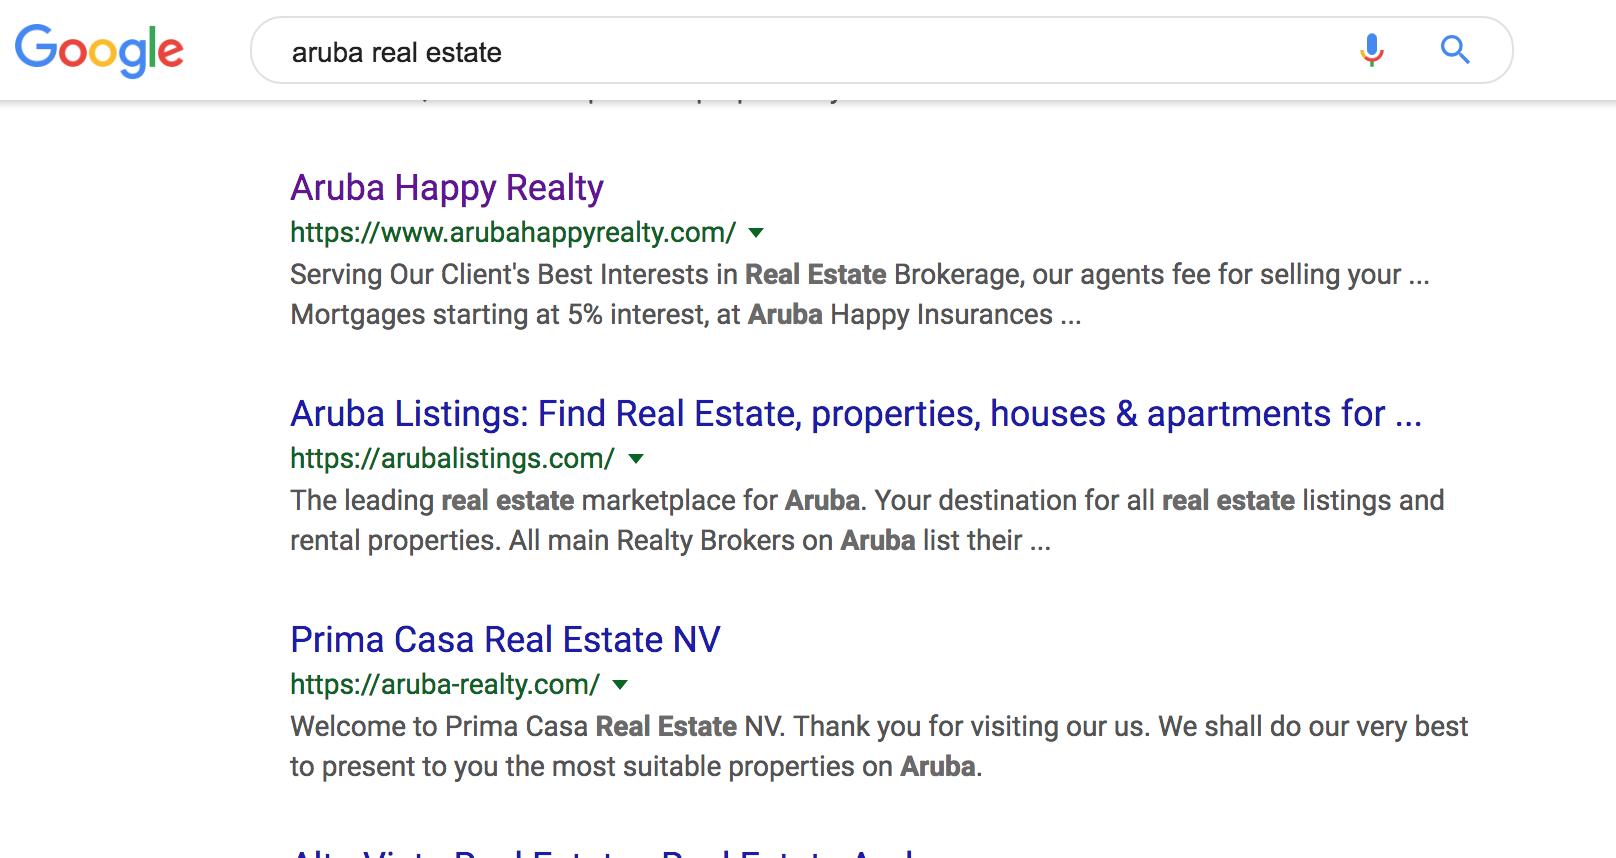 Aruba Real Estate